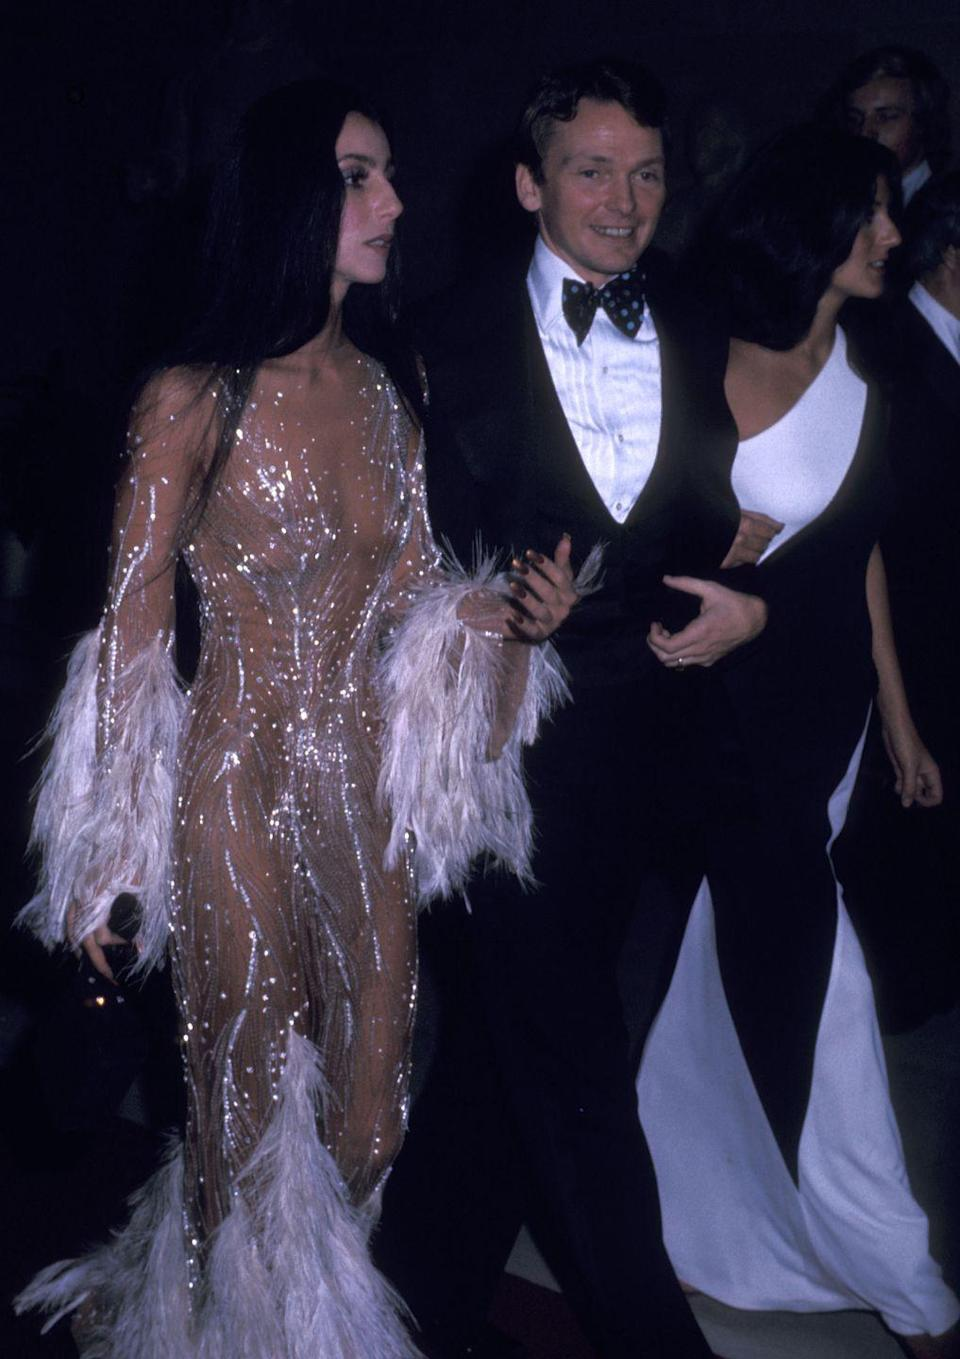 <p>Arriving to the 1974 Met Gala alongside Bob Mackie in the naked gown that inspired a red carpet trend decades later. The feathered and jewel-encrusted look was designed by Mackie. </p>